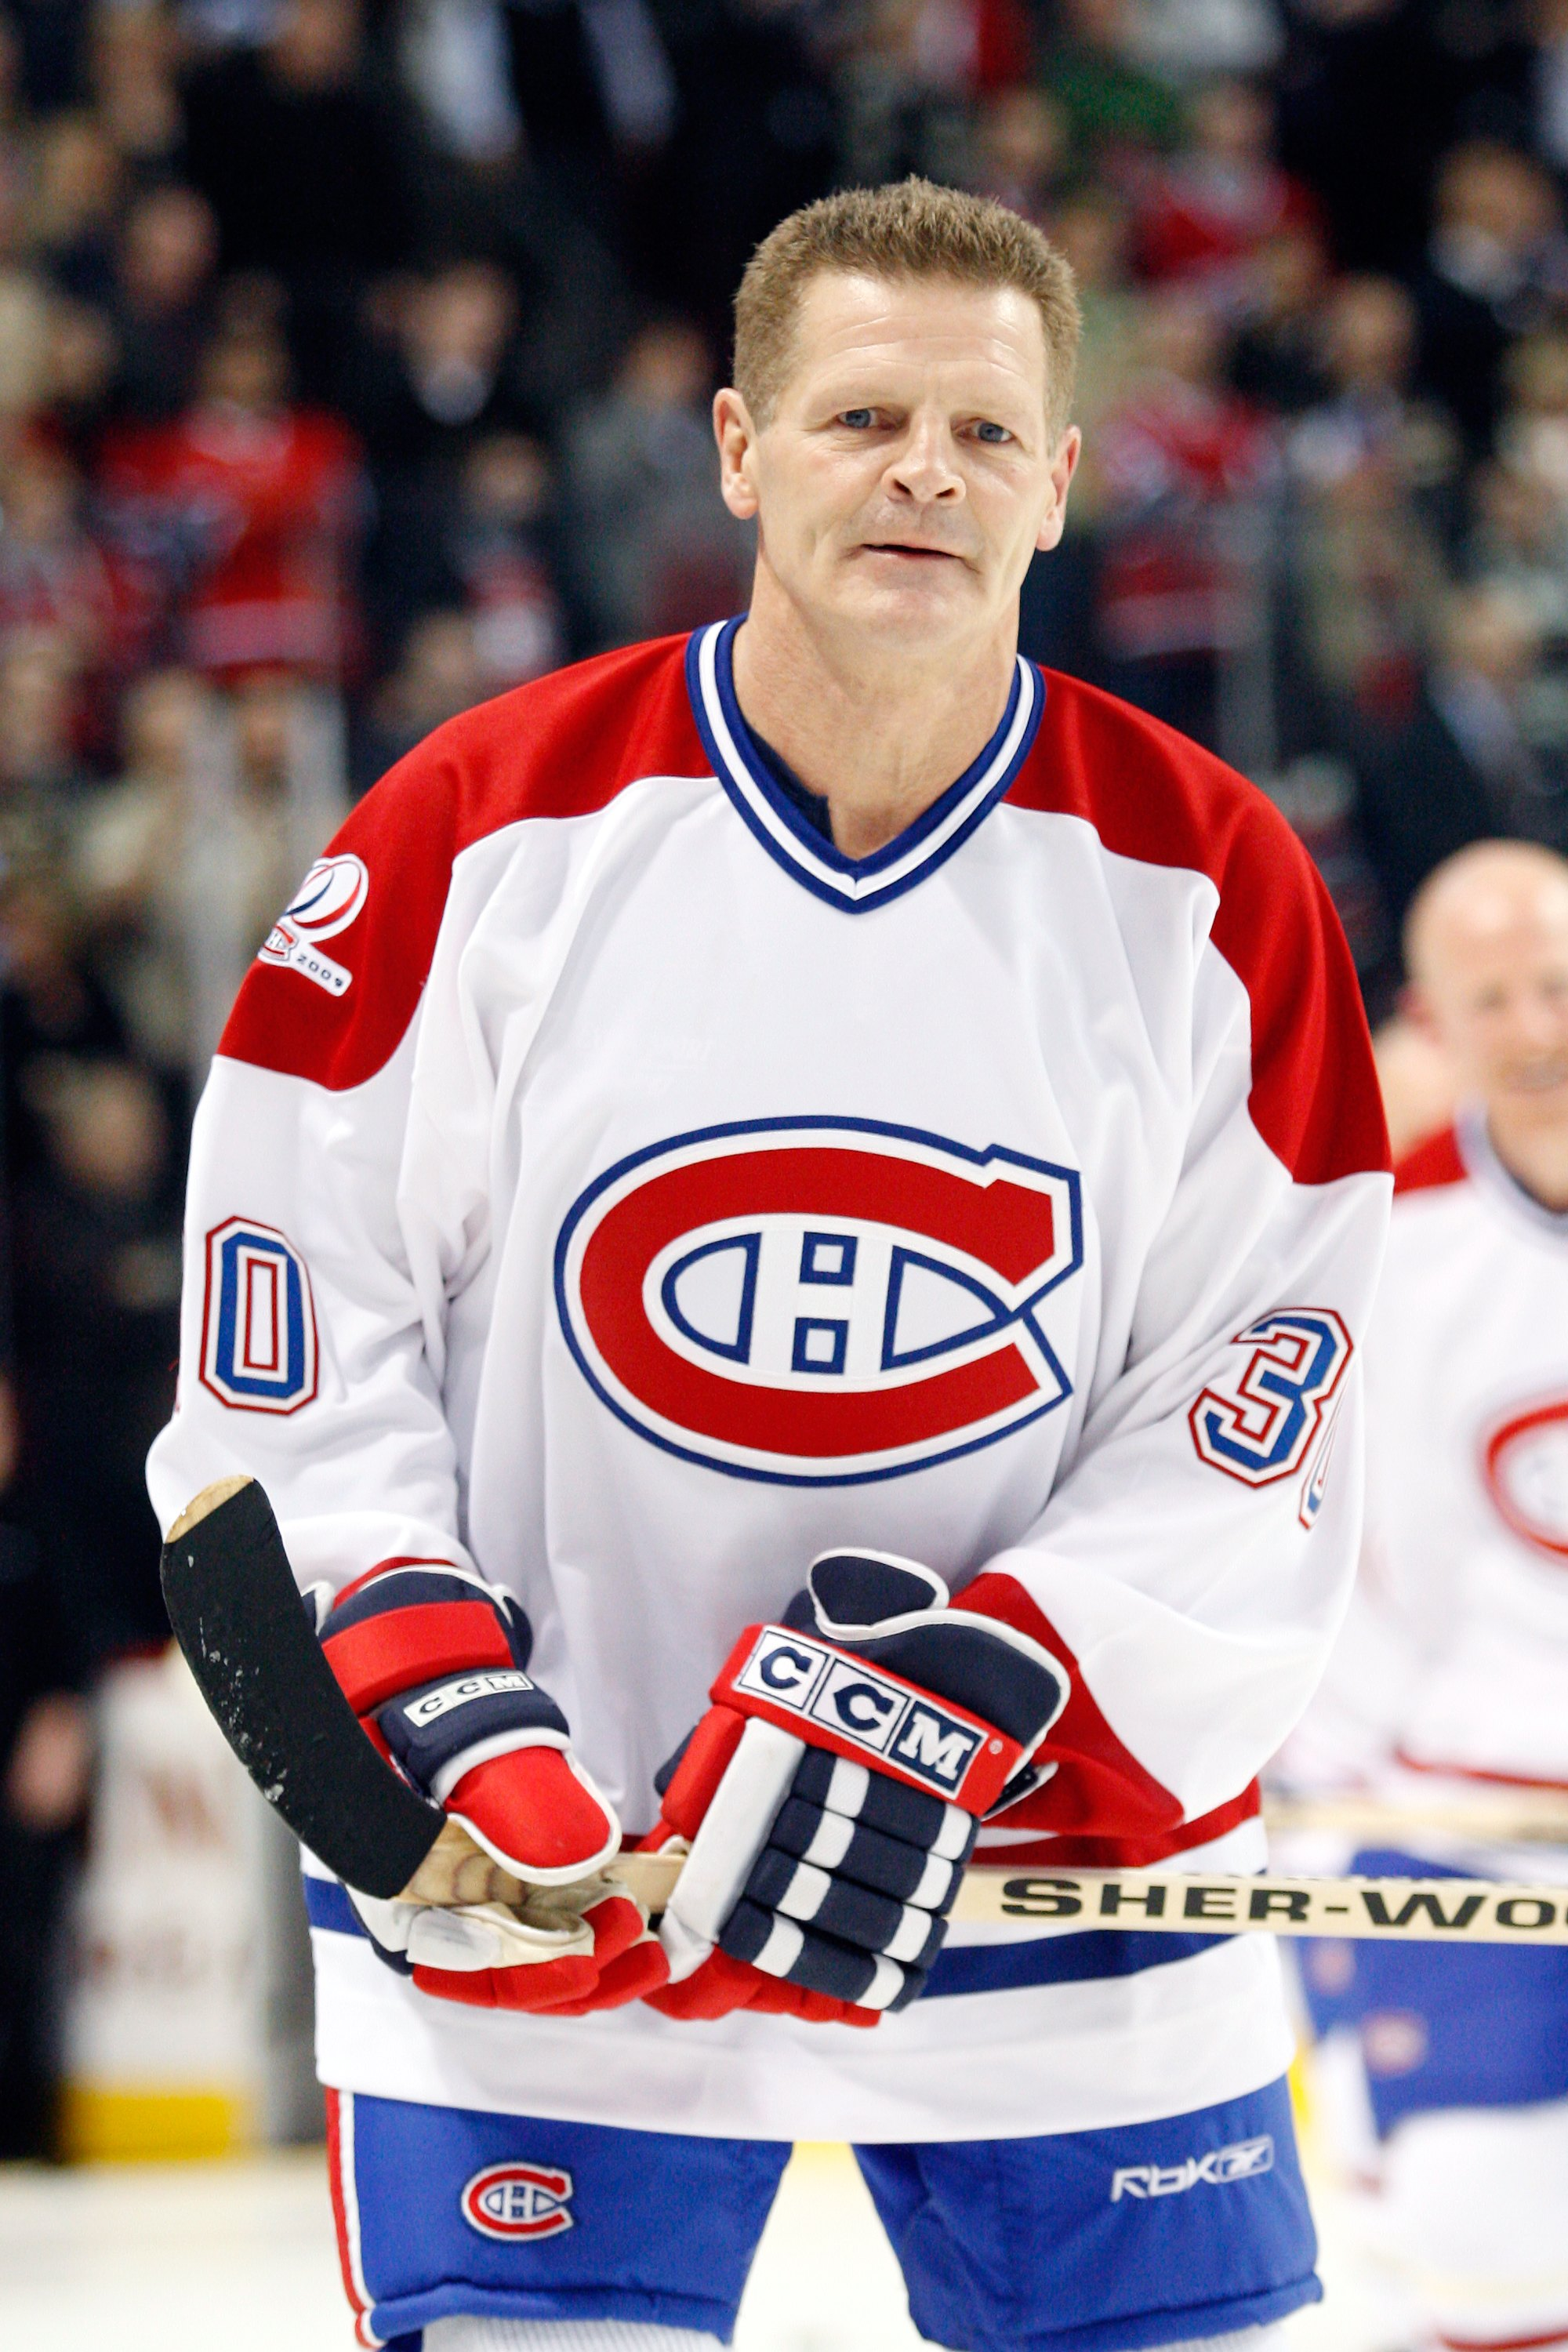 MONTREAL- DECEMBER 4:  Former Montreal Canadien Chris Nilan skates during the Centennial Celebration ceremonies prior to the NHL game between the Montreal Canadiens and Boston Bruins on December 4, 2009 at the Bell Centre in Montreal, Quebec, Canada.  The